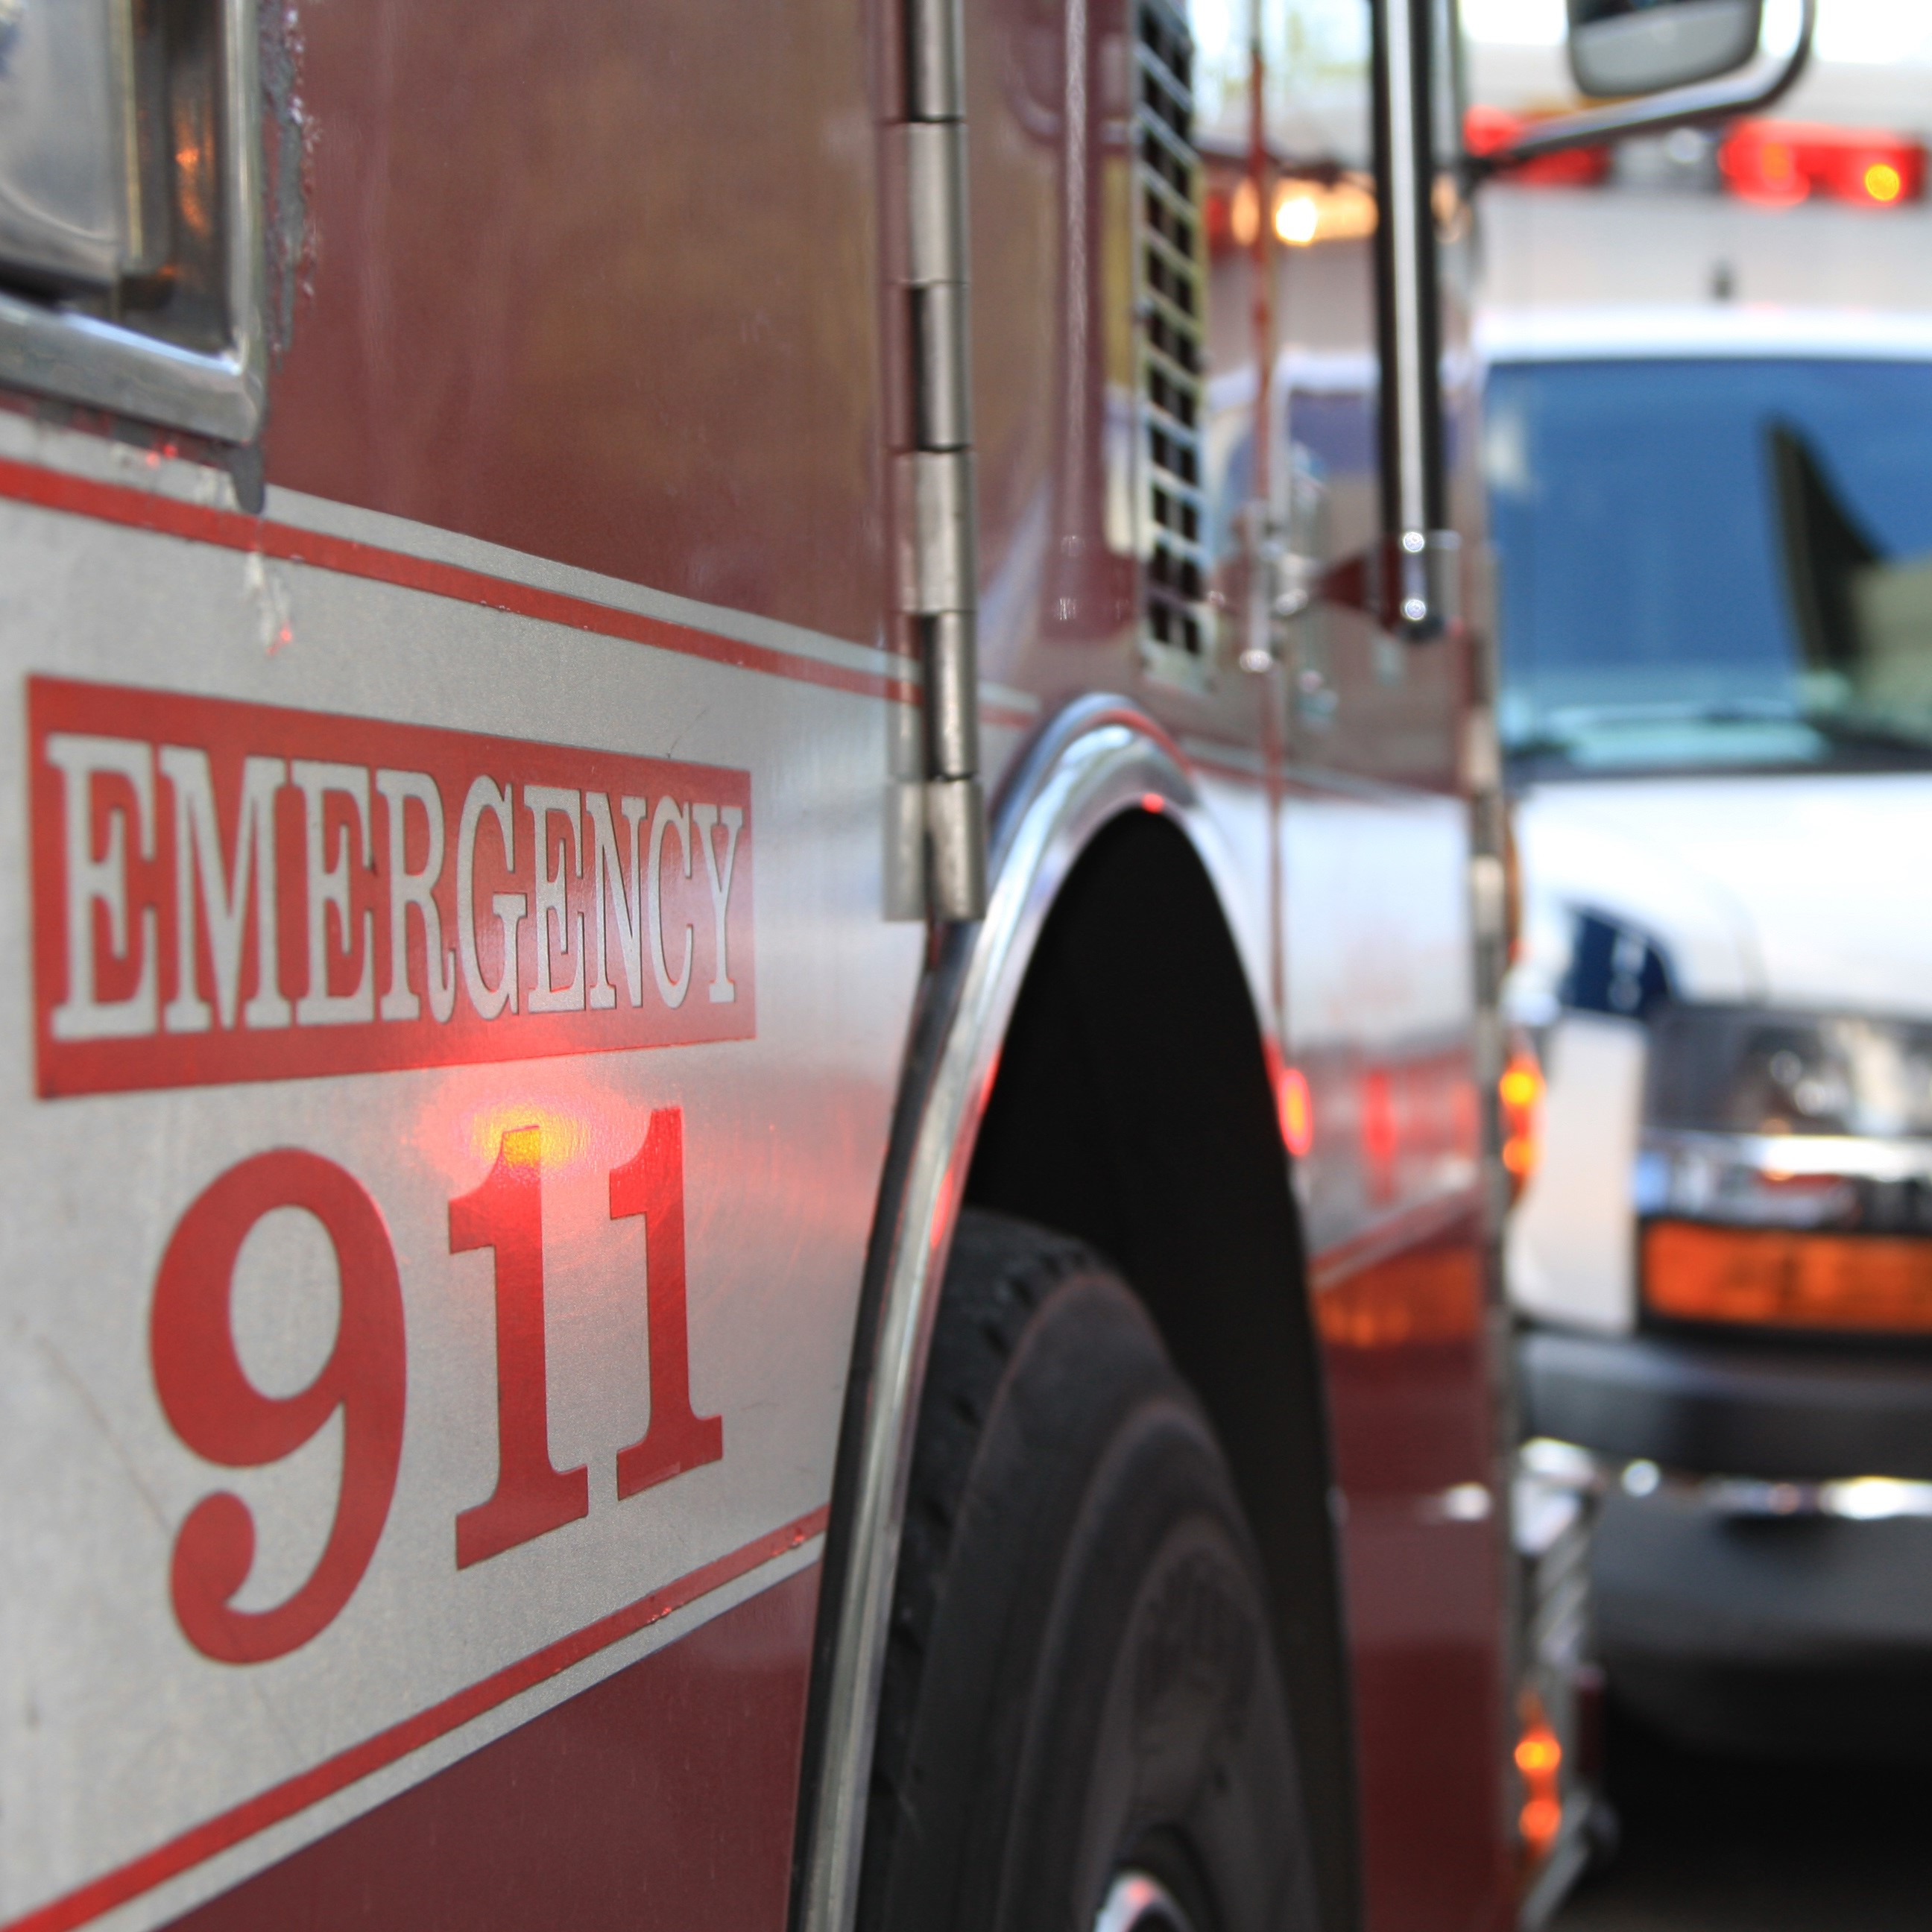 Post-overdose referrals to treatment to increase after EMS legal representation examines lawful cross-agency data sharing.